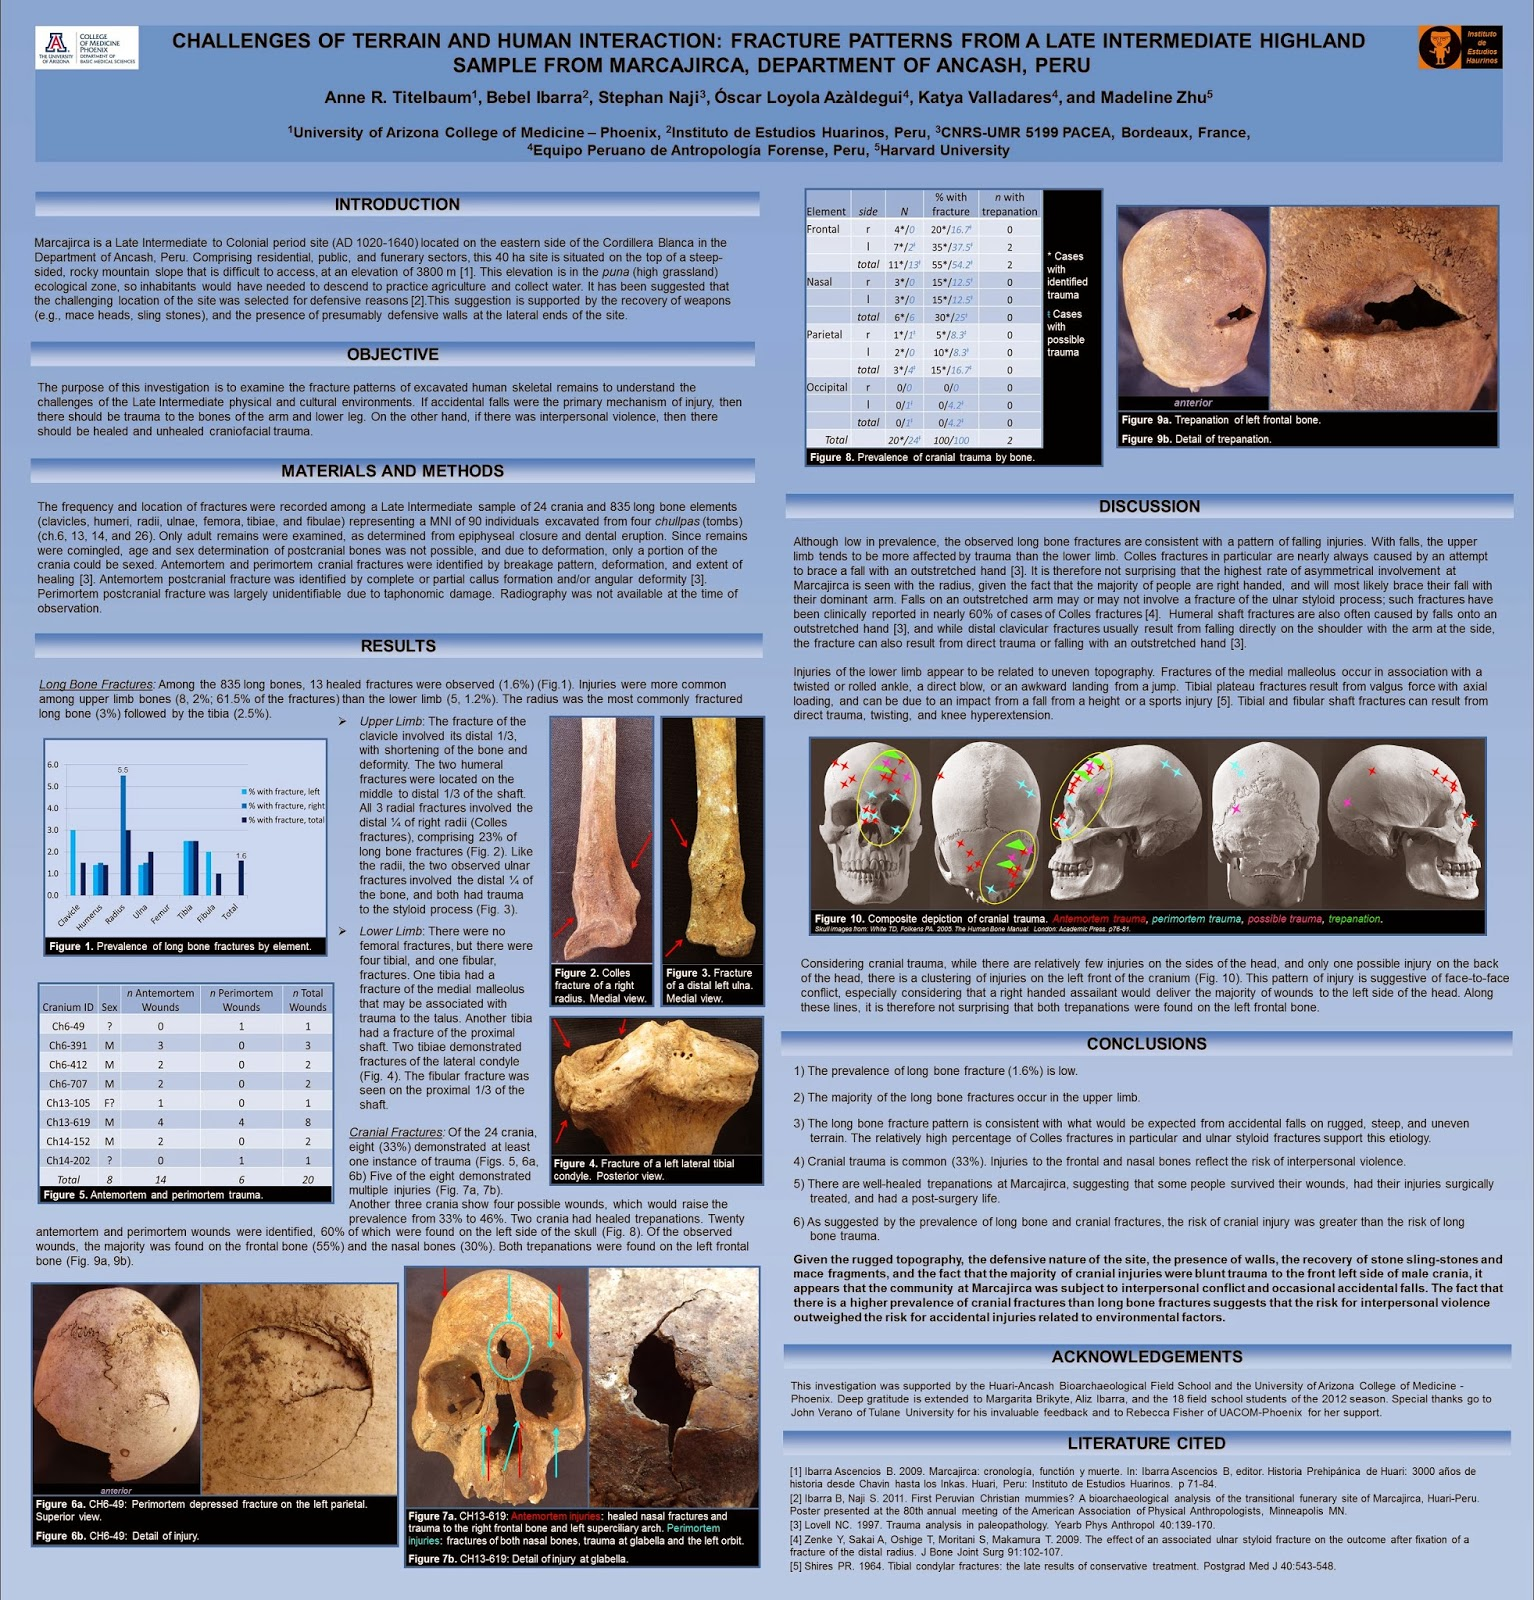 Bioarchaeology of Ancash: Bioarchaeology of Huari posters and ...